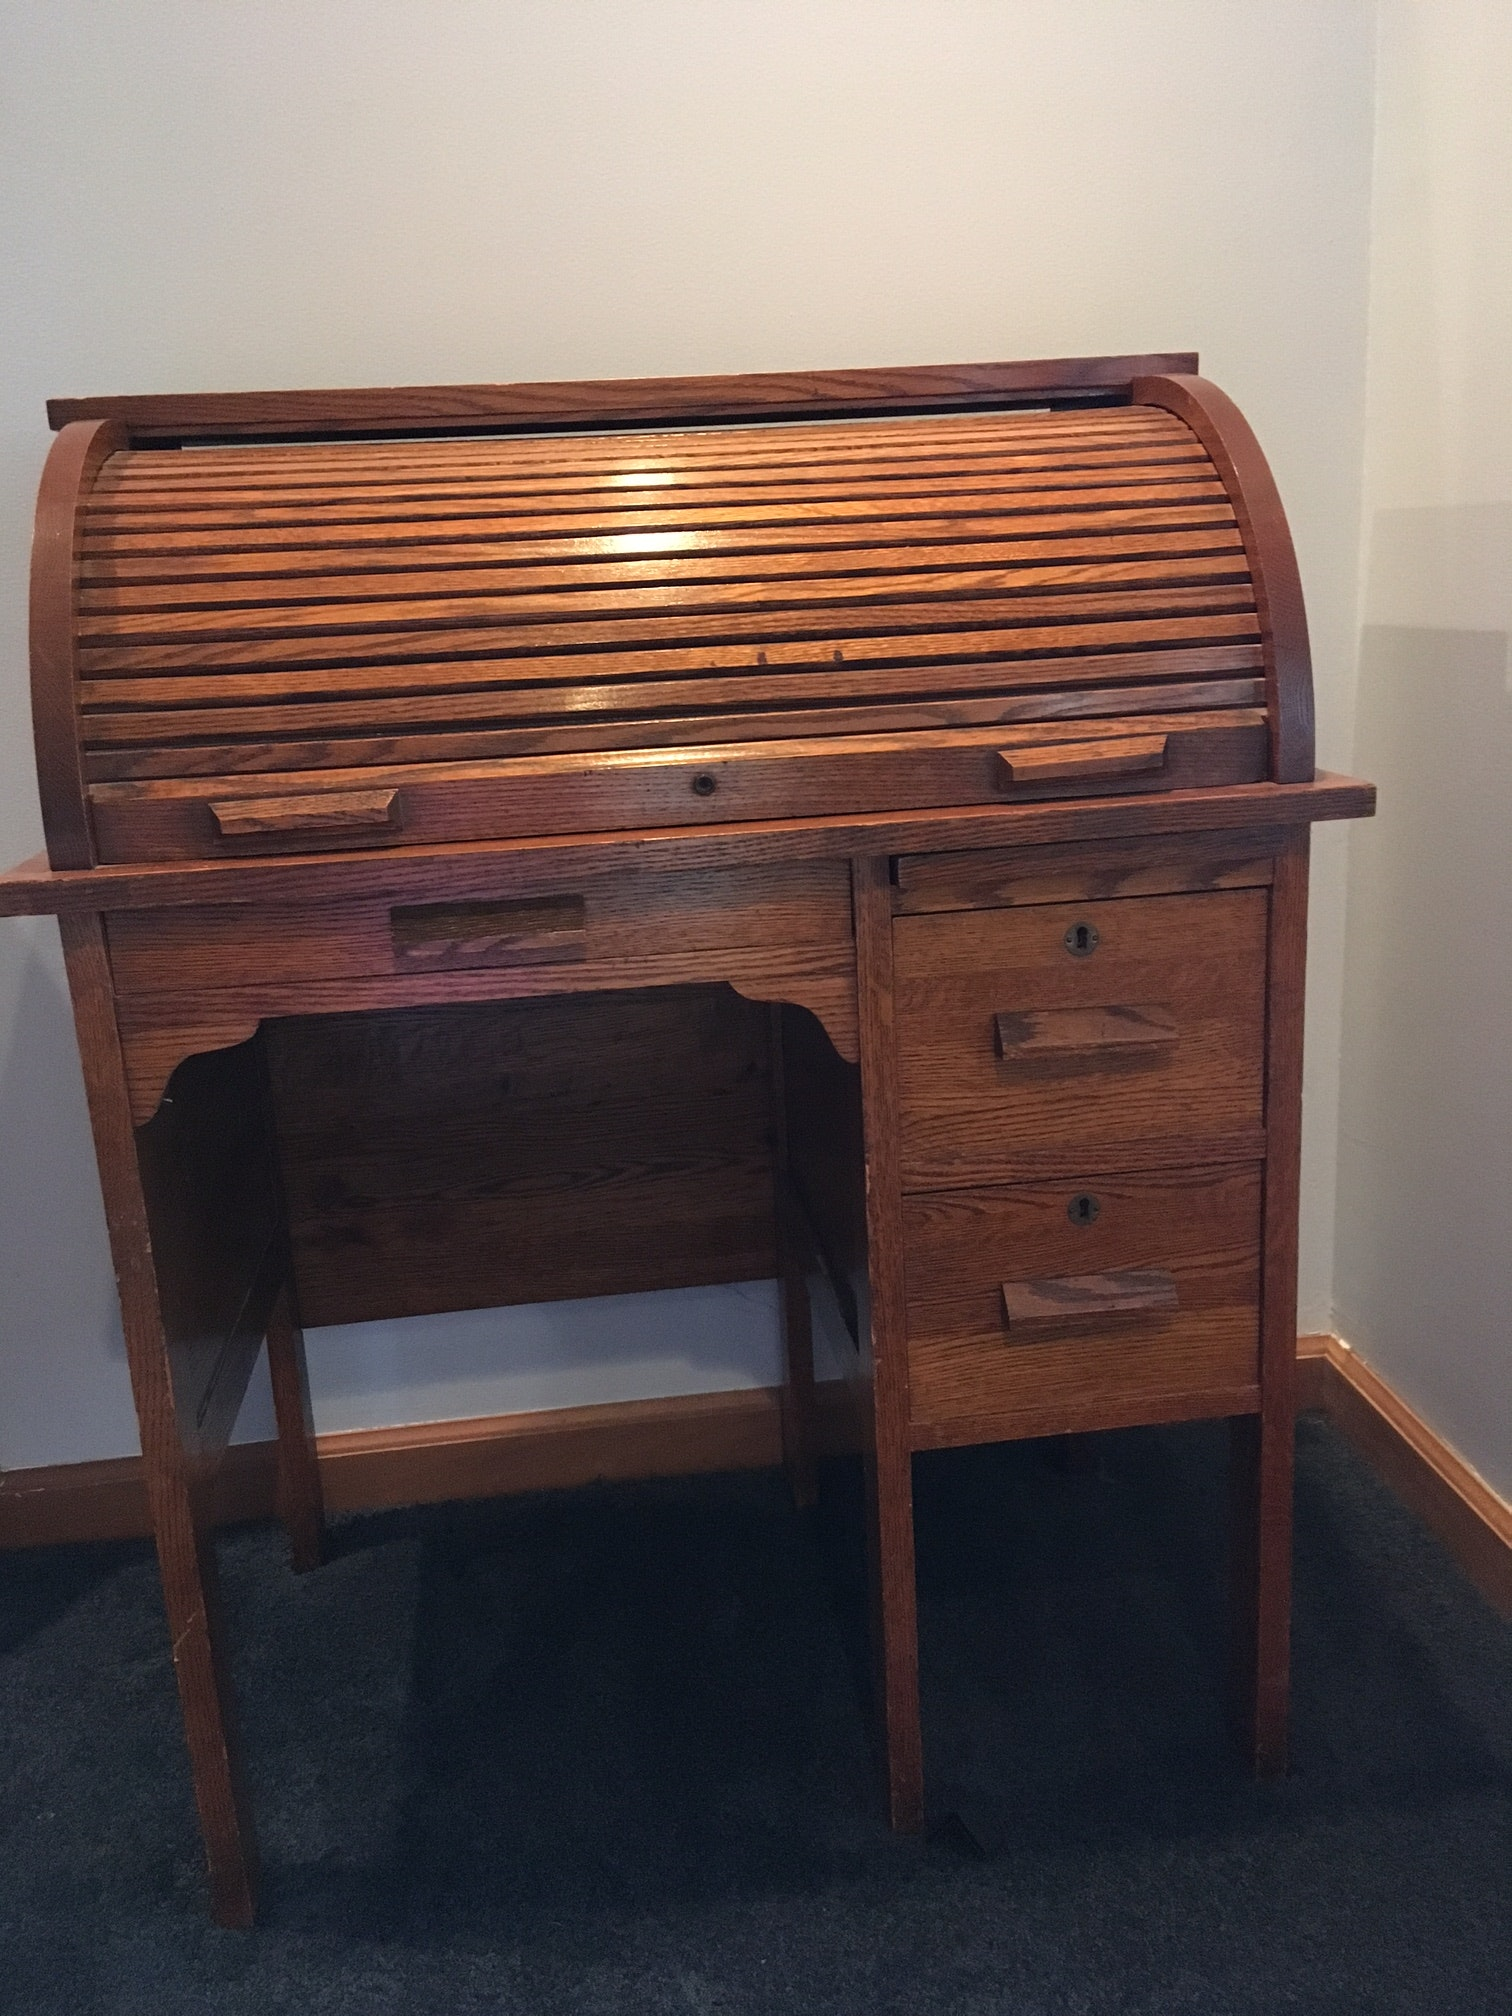 Vintage Child's Roll-Top Desk and Chair